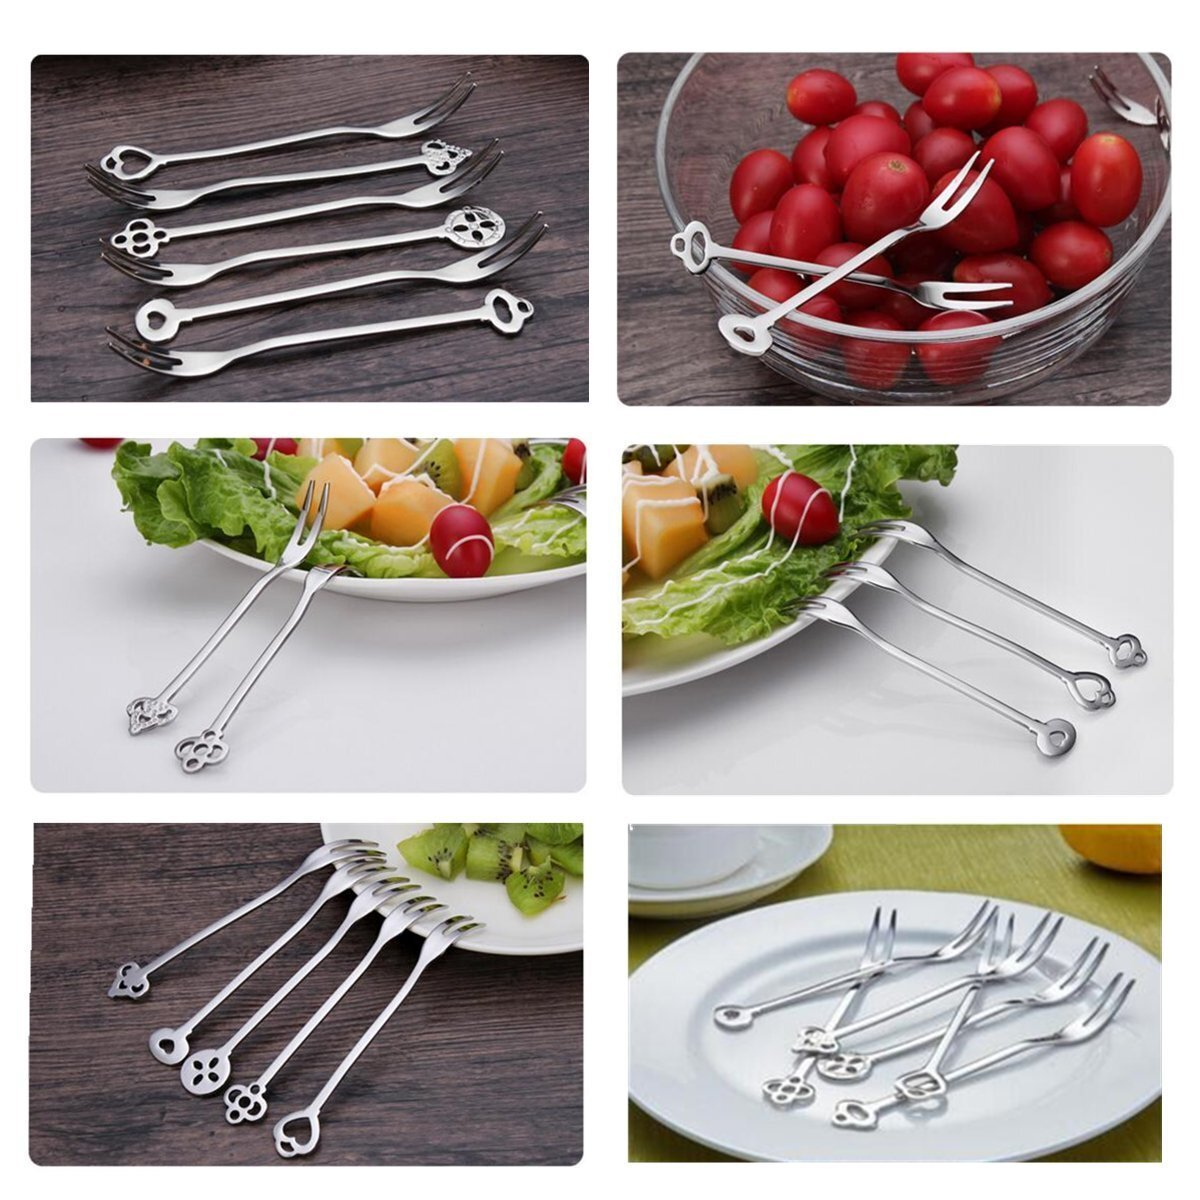 Stainless Steel Fruit Forks, Bistro Cocktail Forks ,Tasting Appetizer Forks,Mini Dessert Forks, Fruits Cake Salad Fork Set for Home and Restaurant-6 piece Set